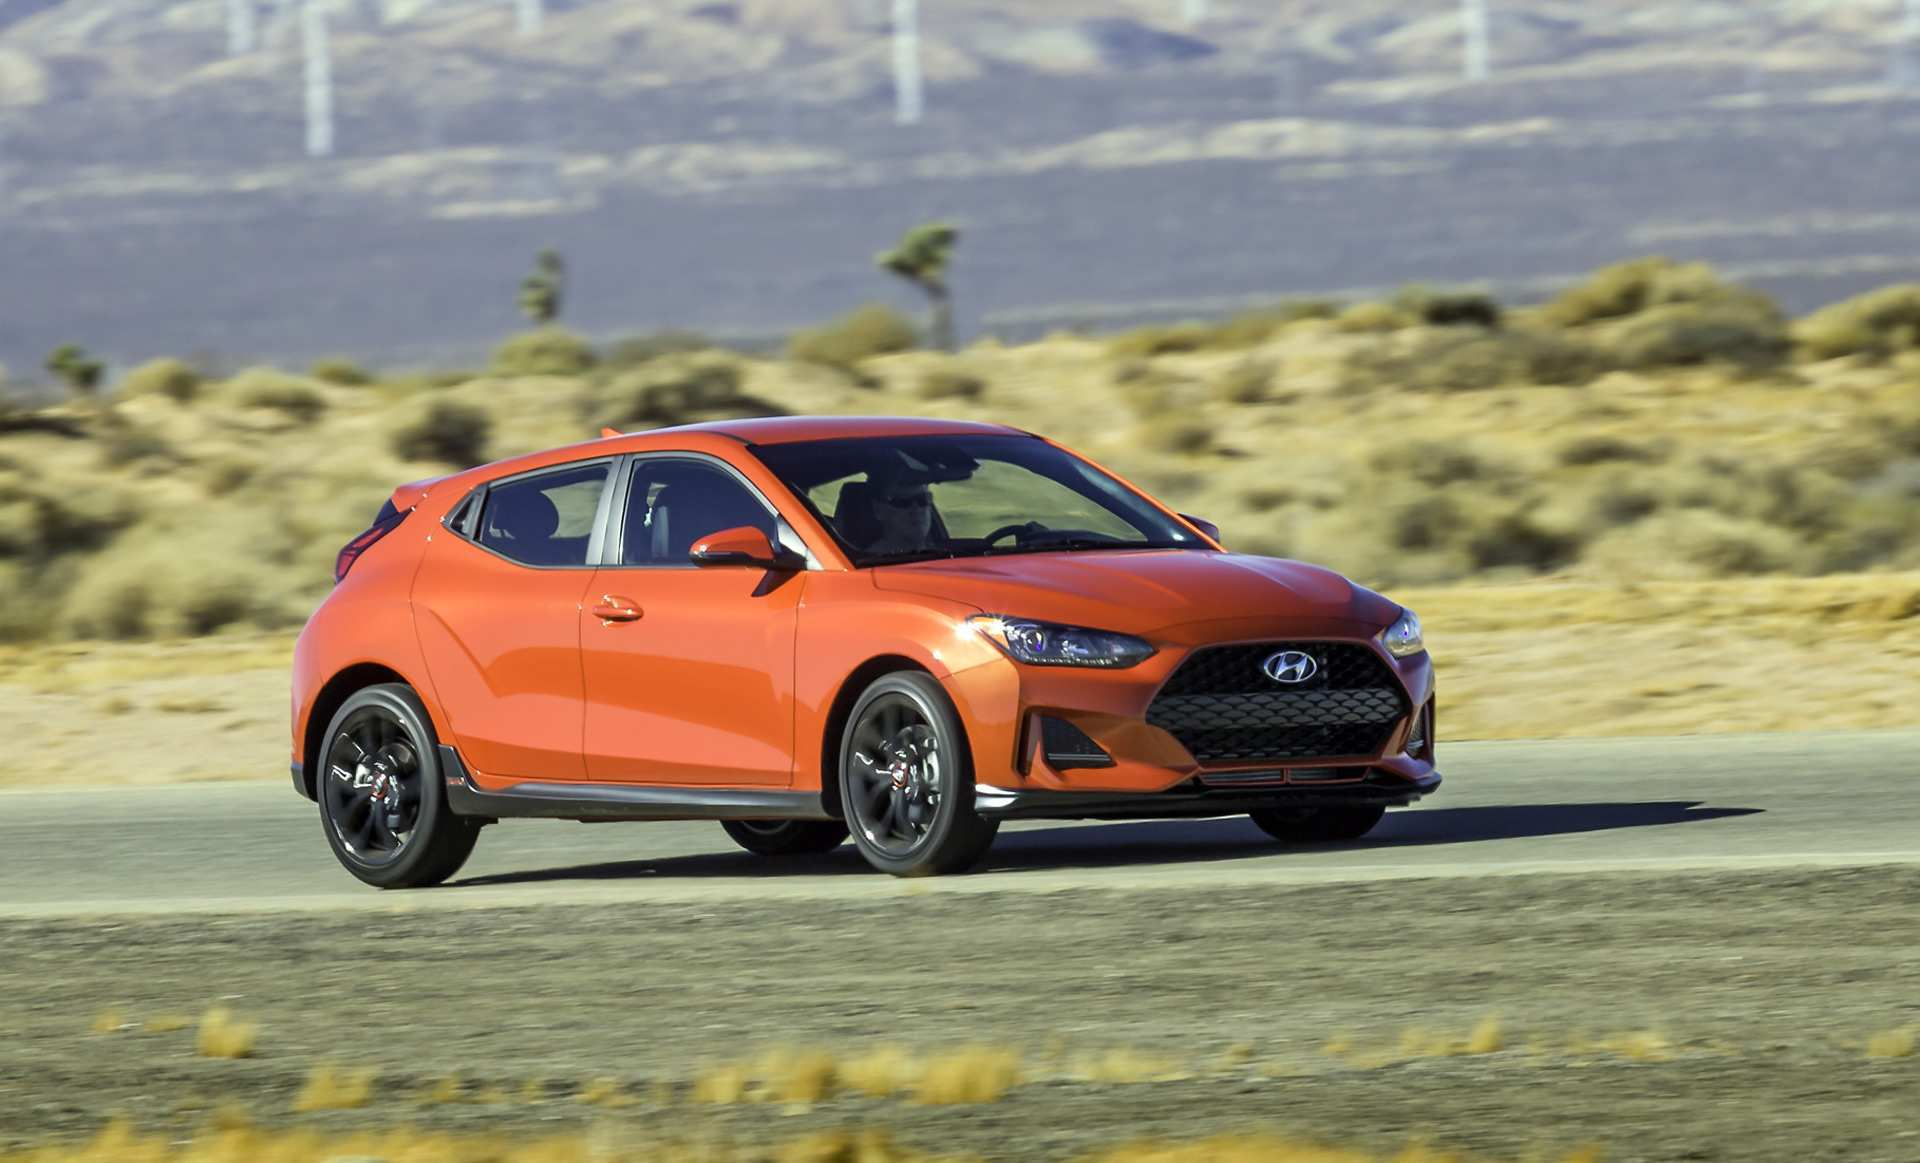 55 New 2019 Hyundai Veloster Turbo Specs